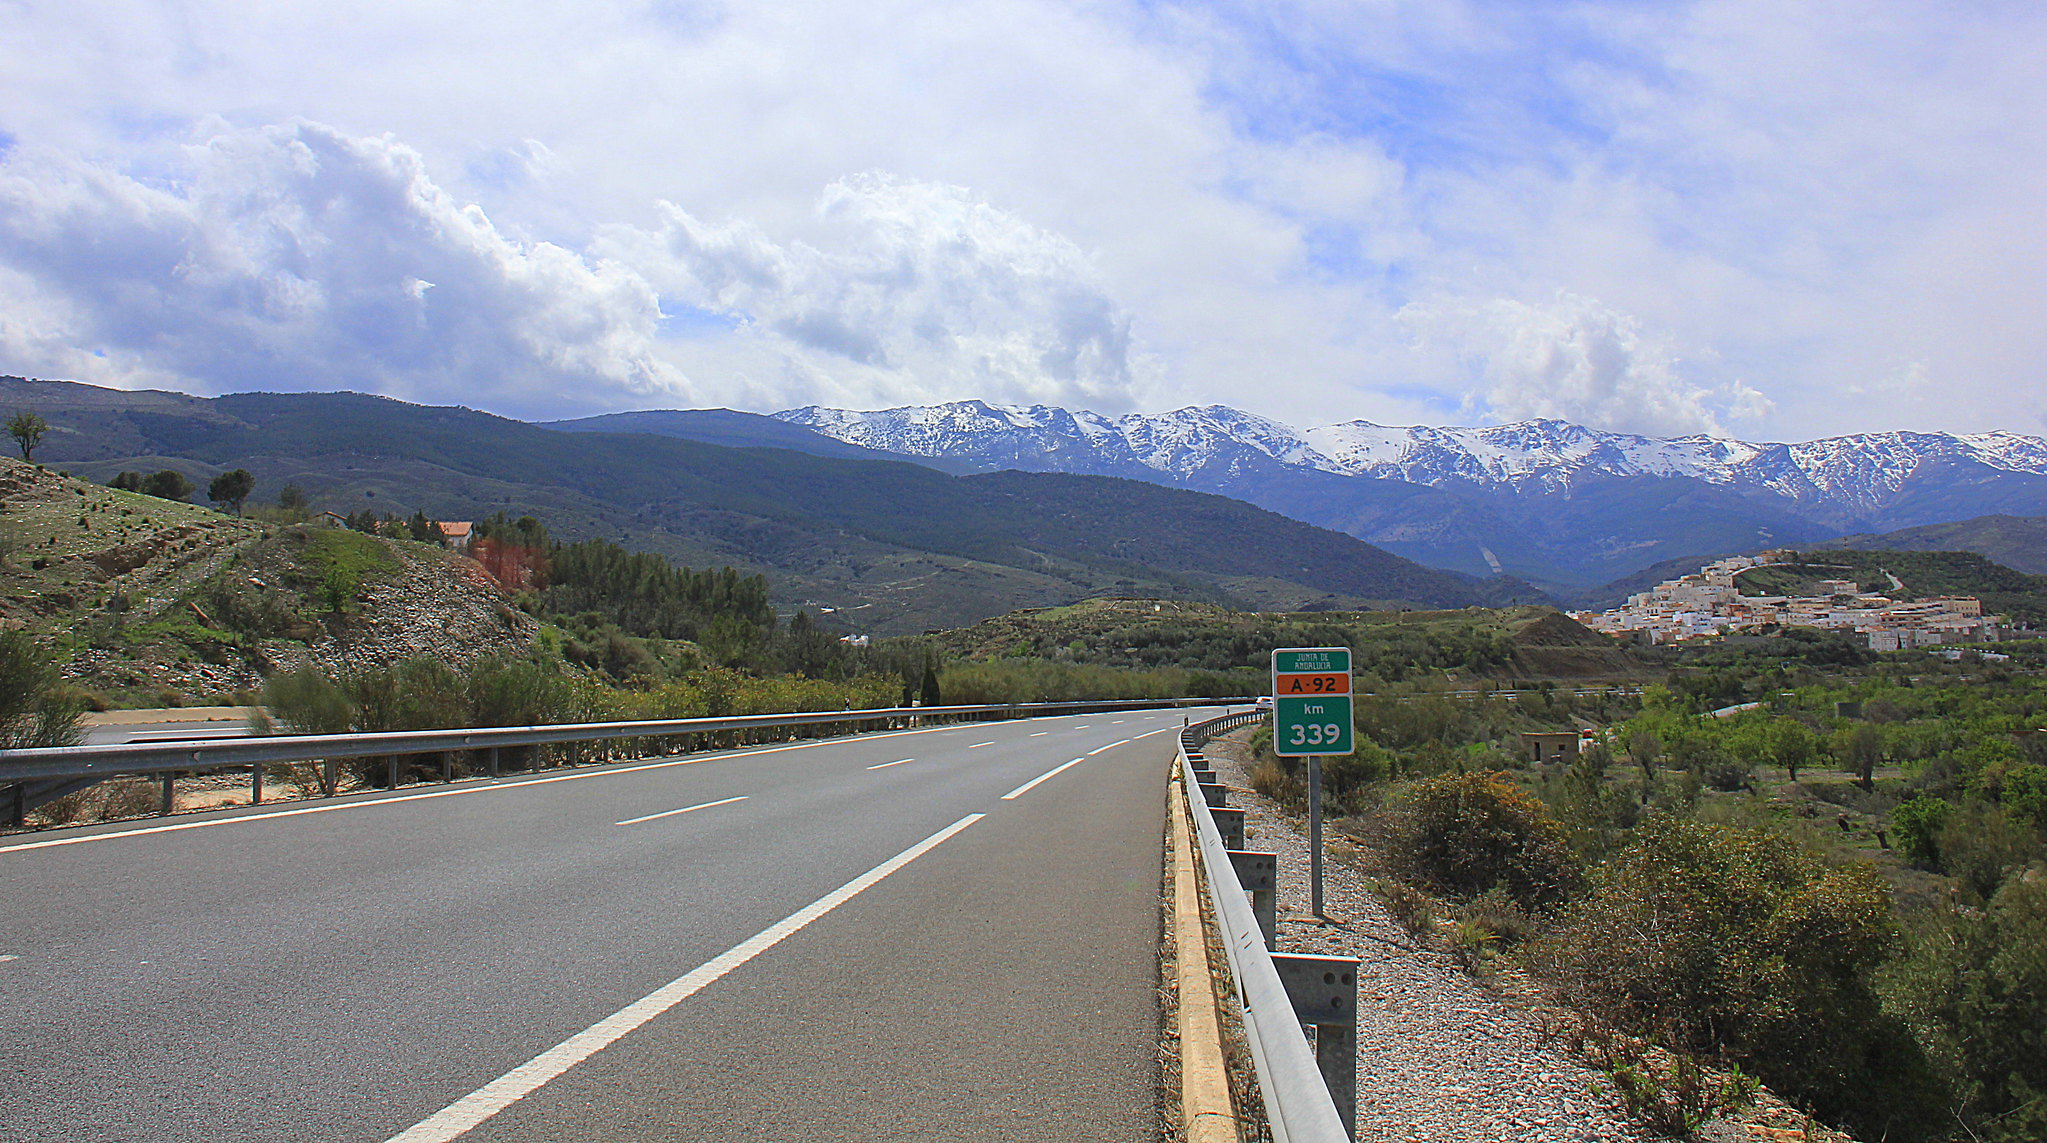 beautiful road trip to Granada from Almeria